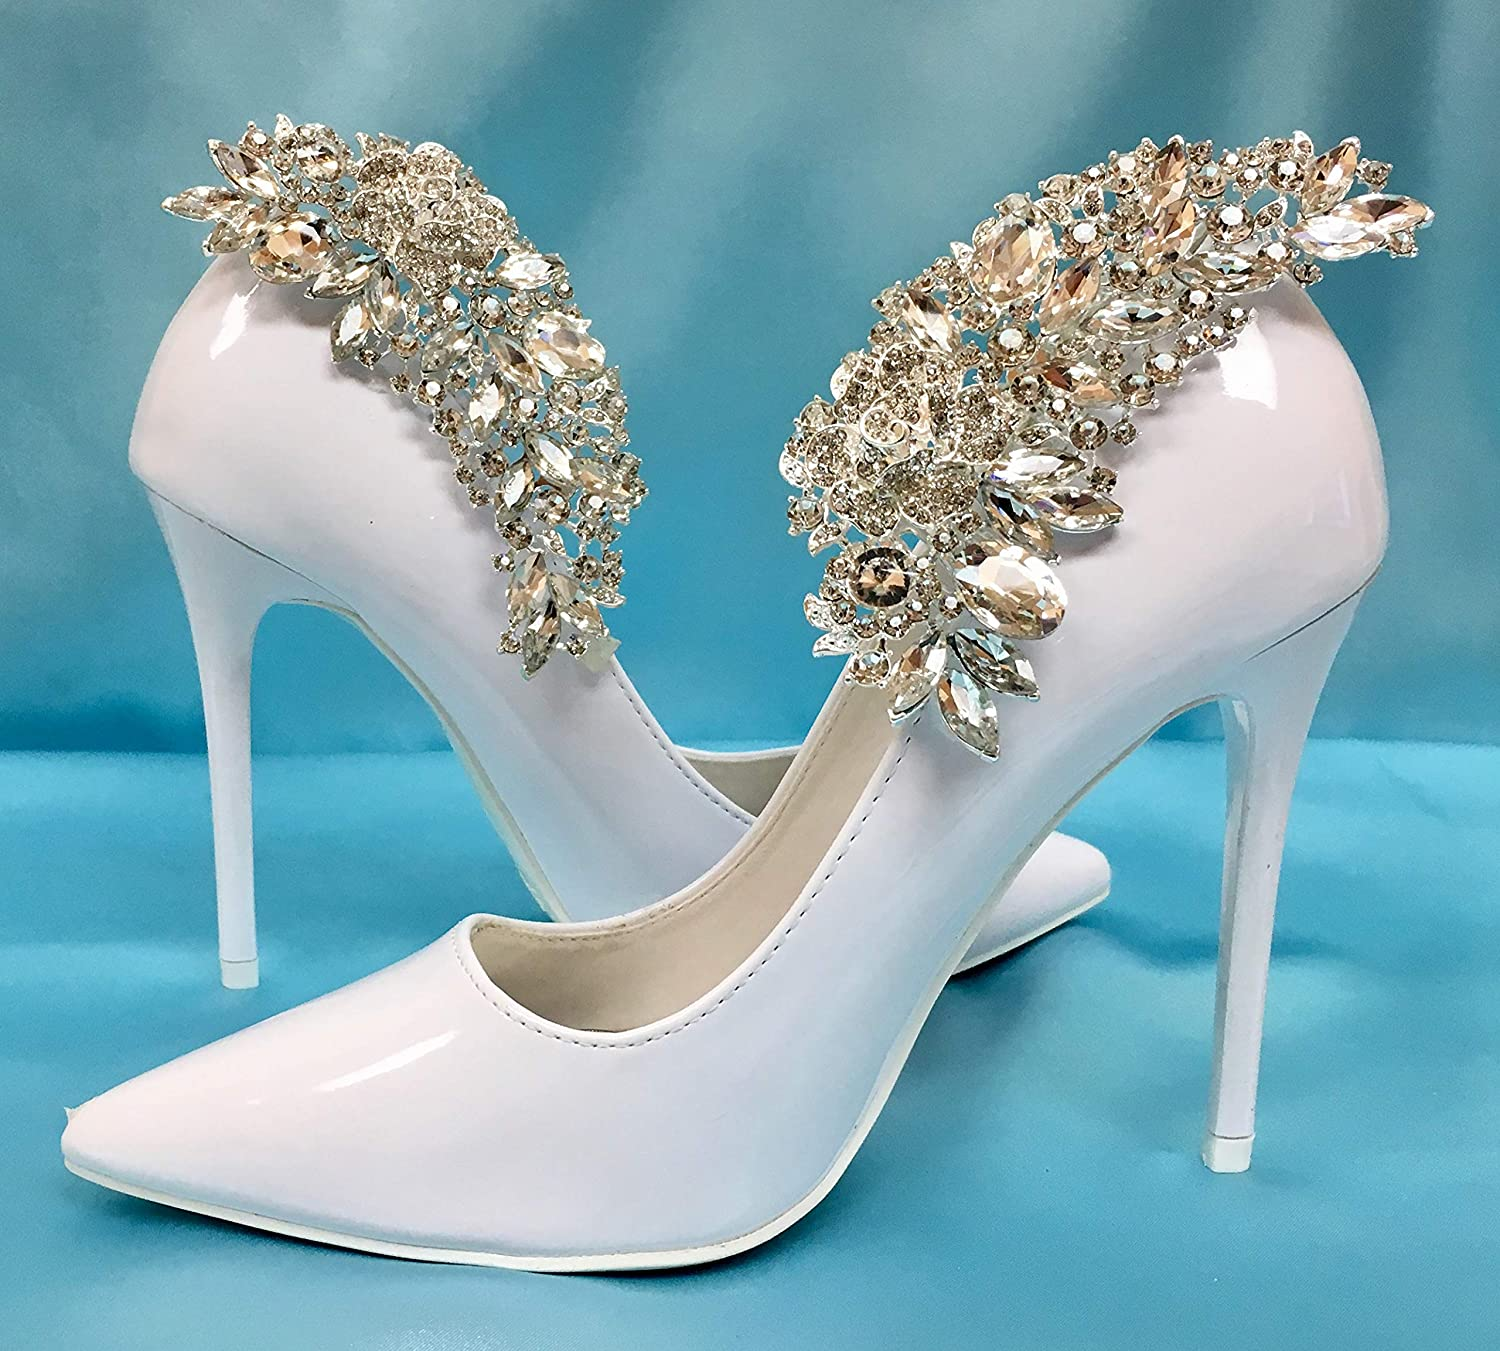 Mififi Shoe Clips Bridal shoe clips Crystal jewelry for shoes Wedding shoes  Shoes for Bride Wedding Crystal Jewelry Decorations